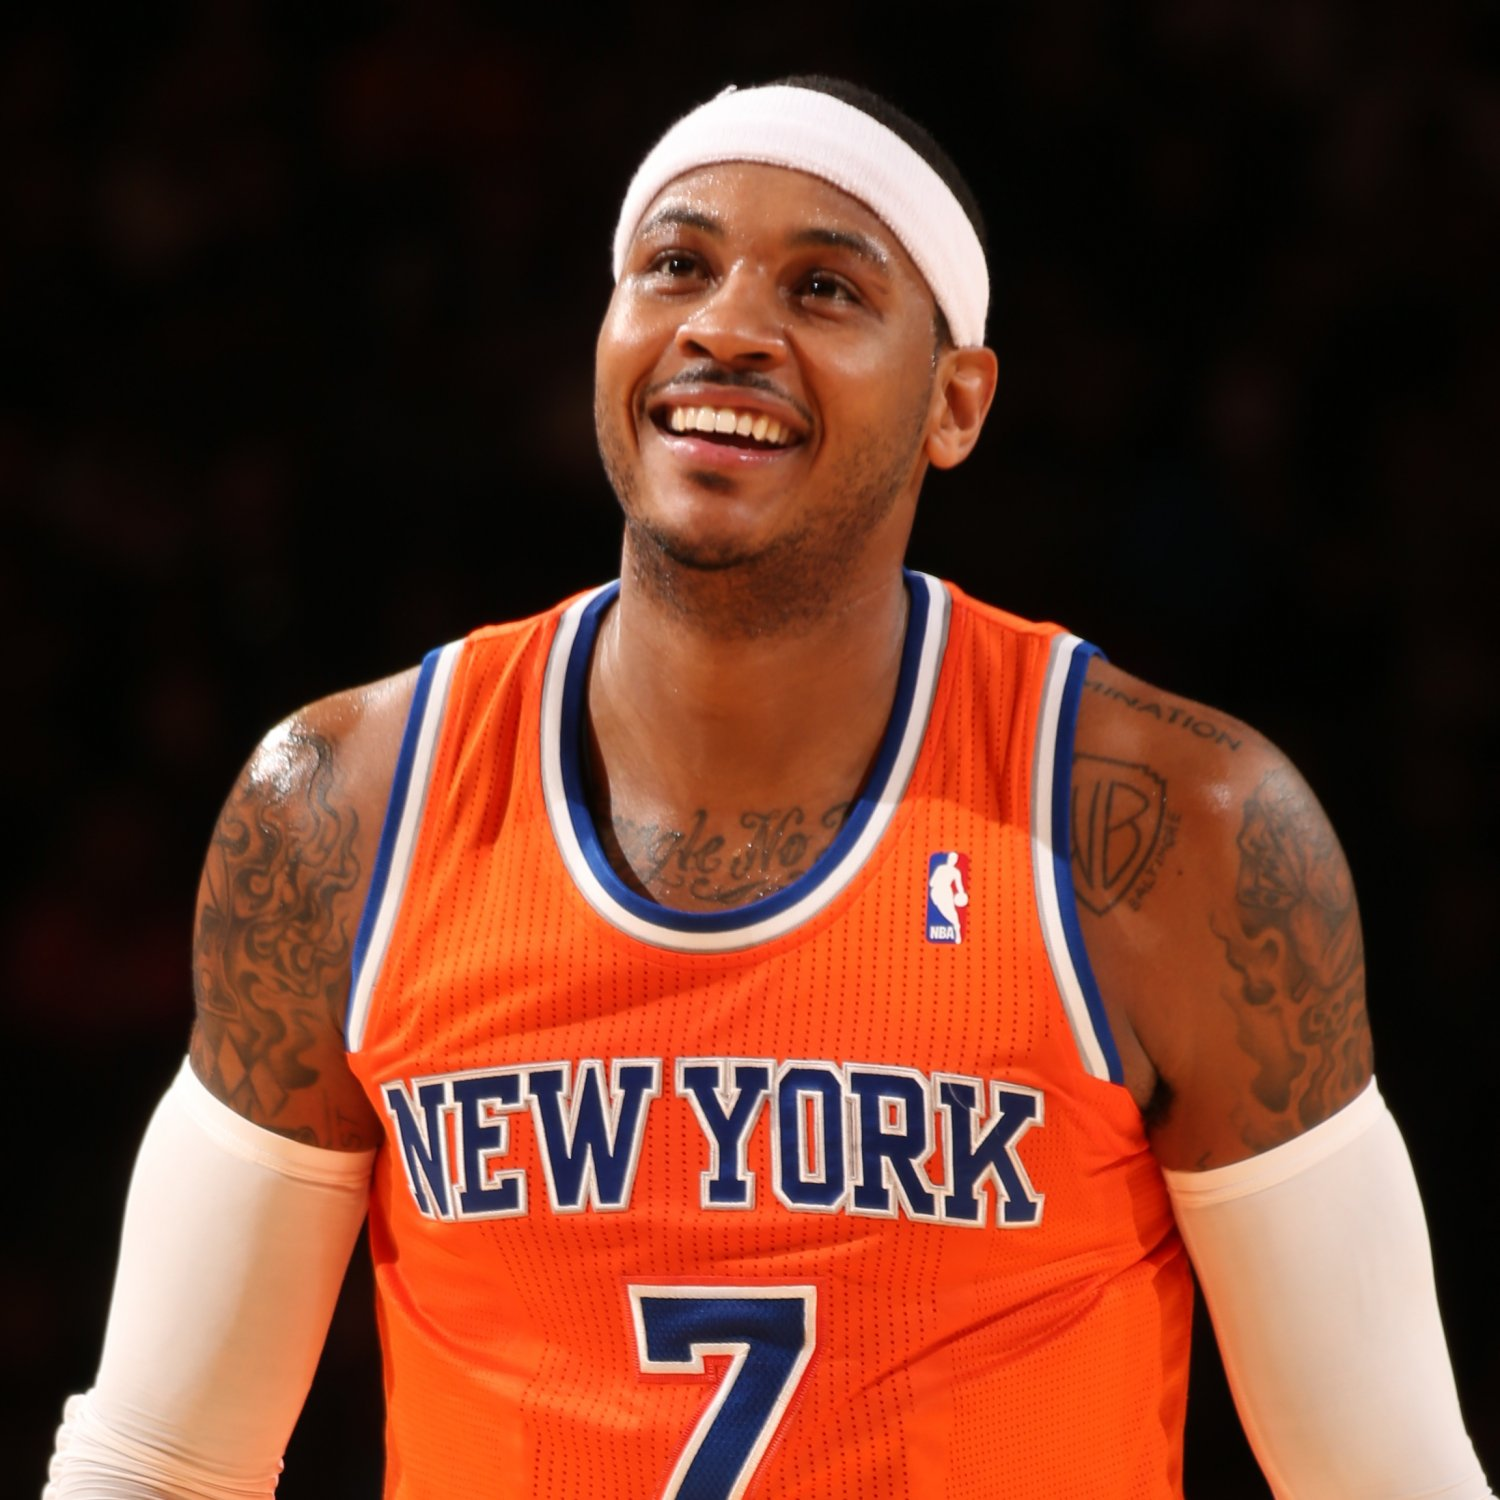 Basketball Player Carmelo Anthony - age: 37